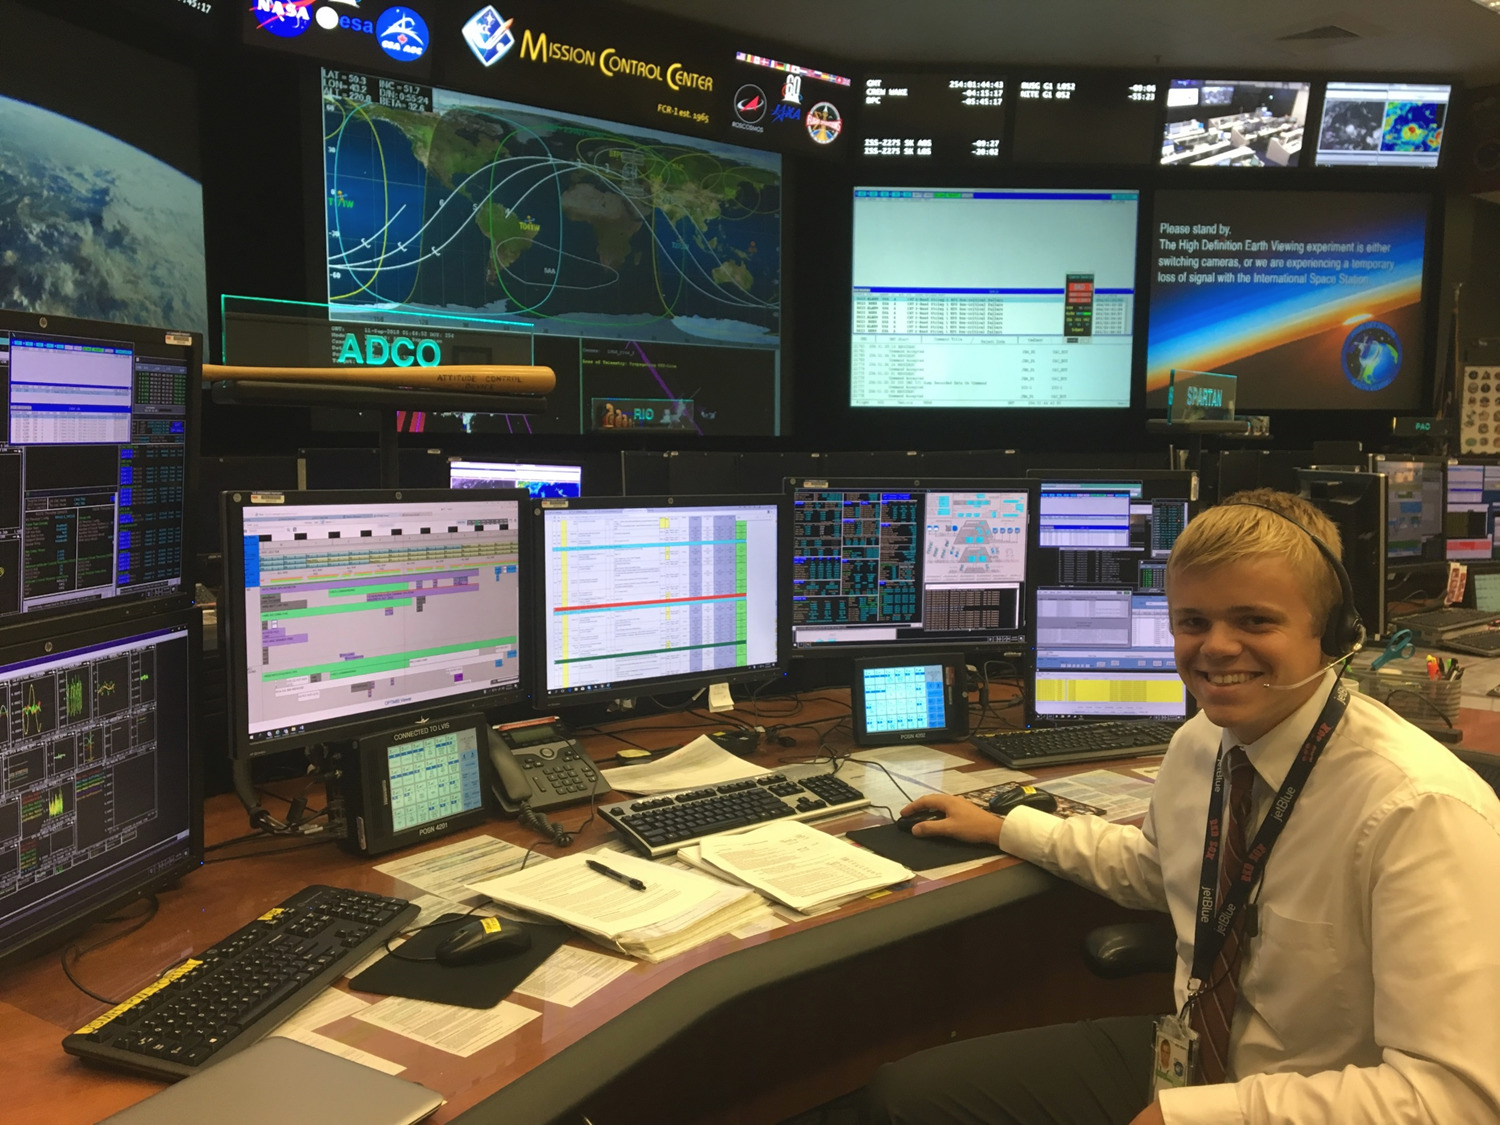 From Shepherd Hill to NASA Mission Control